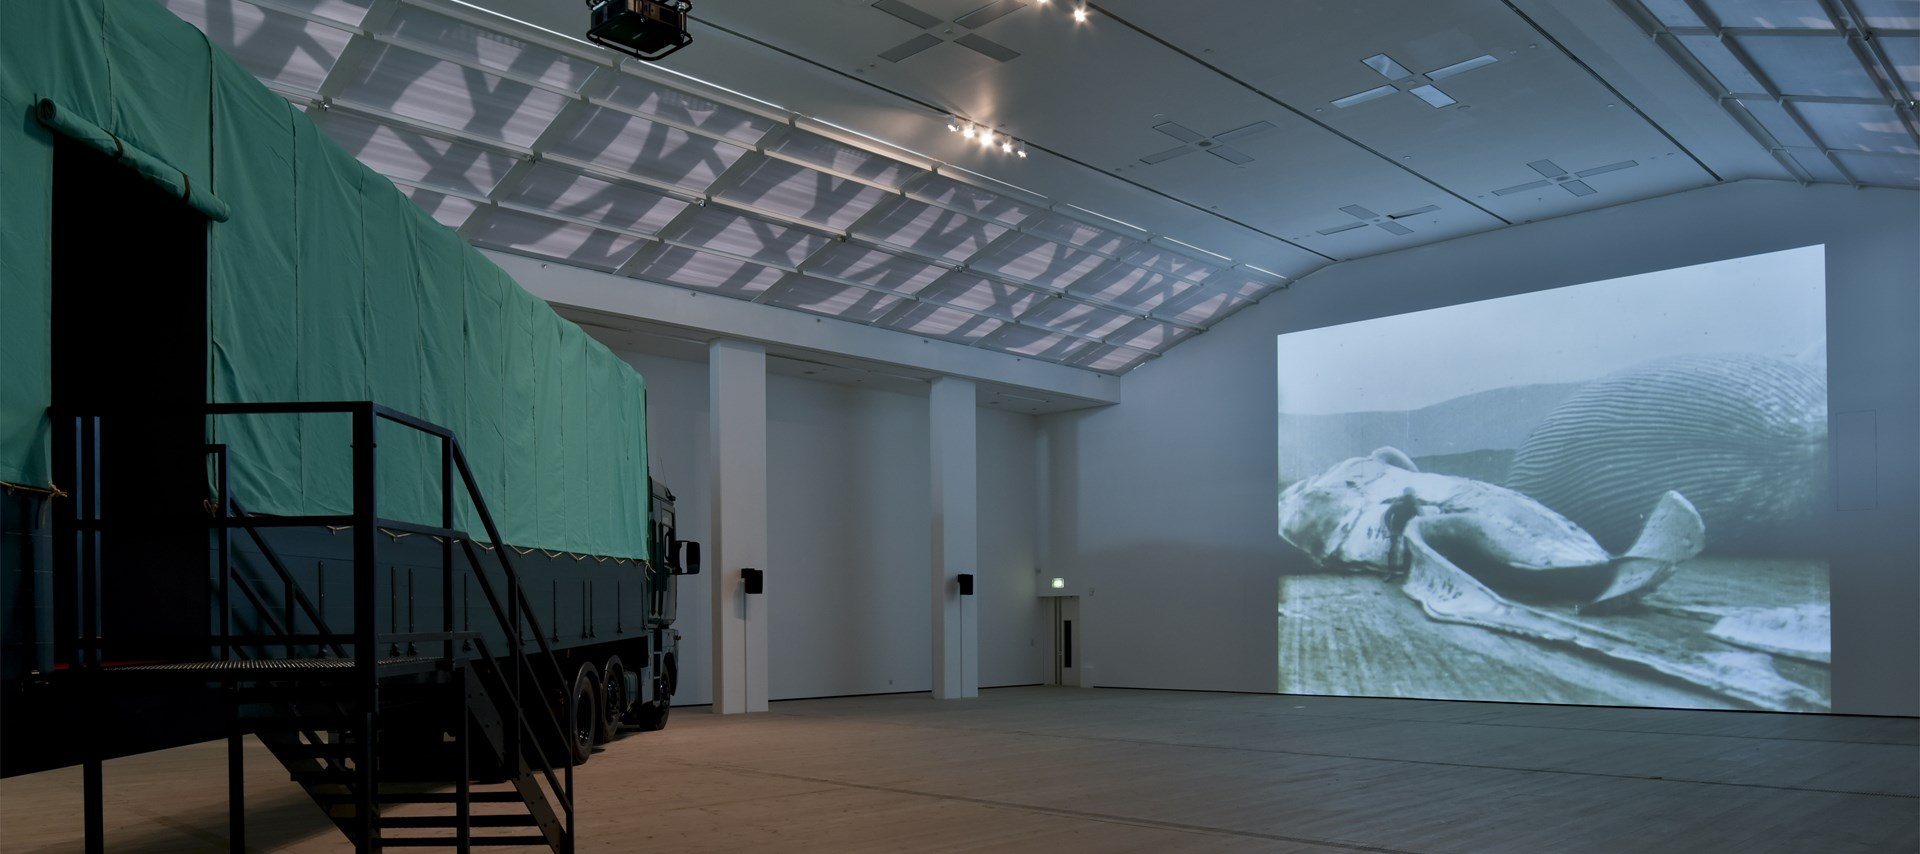 Fiona Tan: Leviathan,Installation view, BALTIC Centre for Contemporary Art. © 2015, BALTIC/Jonty Wilde